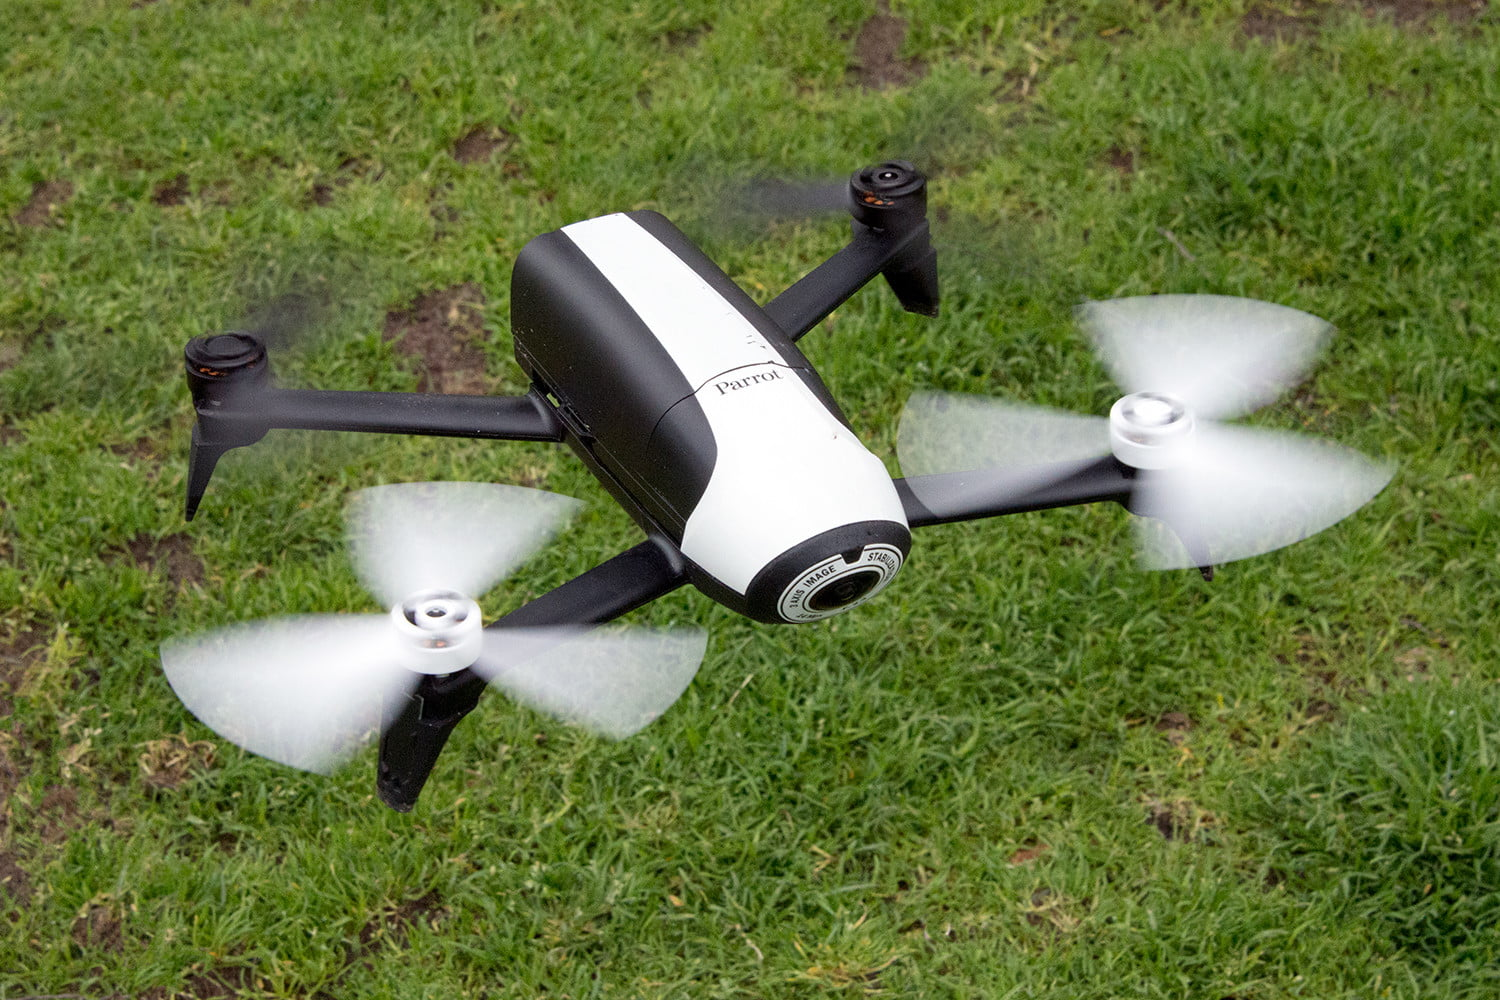 Parrot Bebop 2 FPV Review | Digital Trends